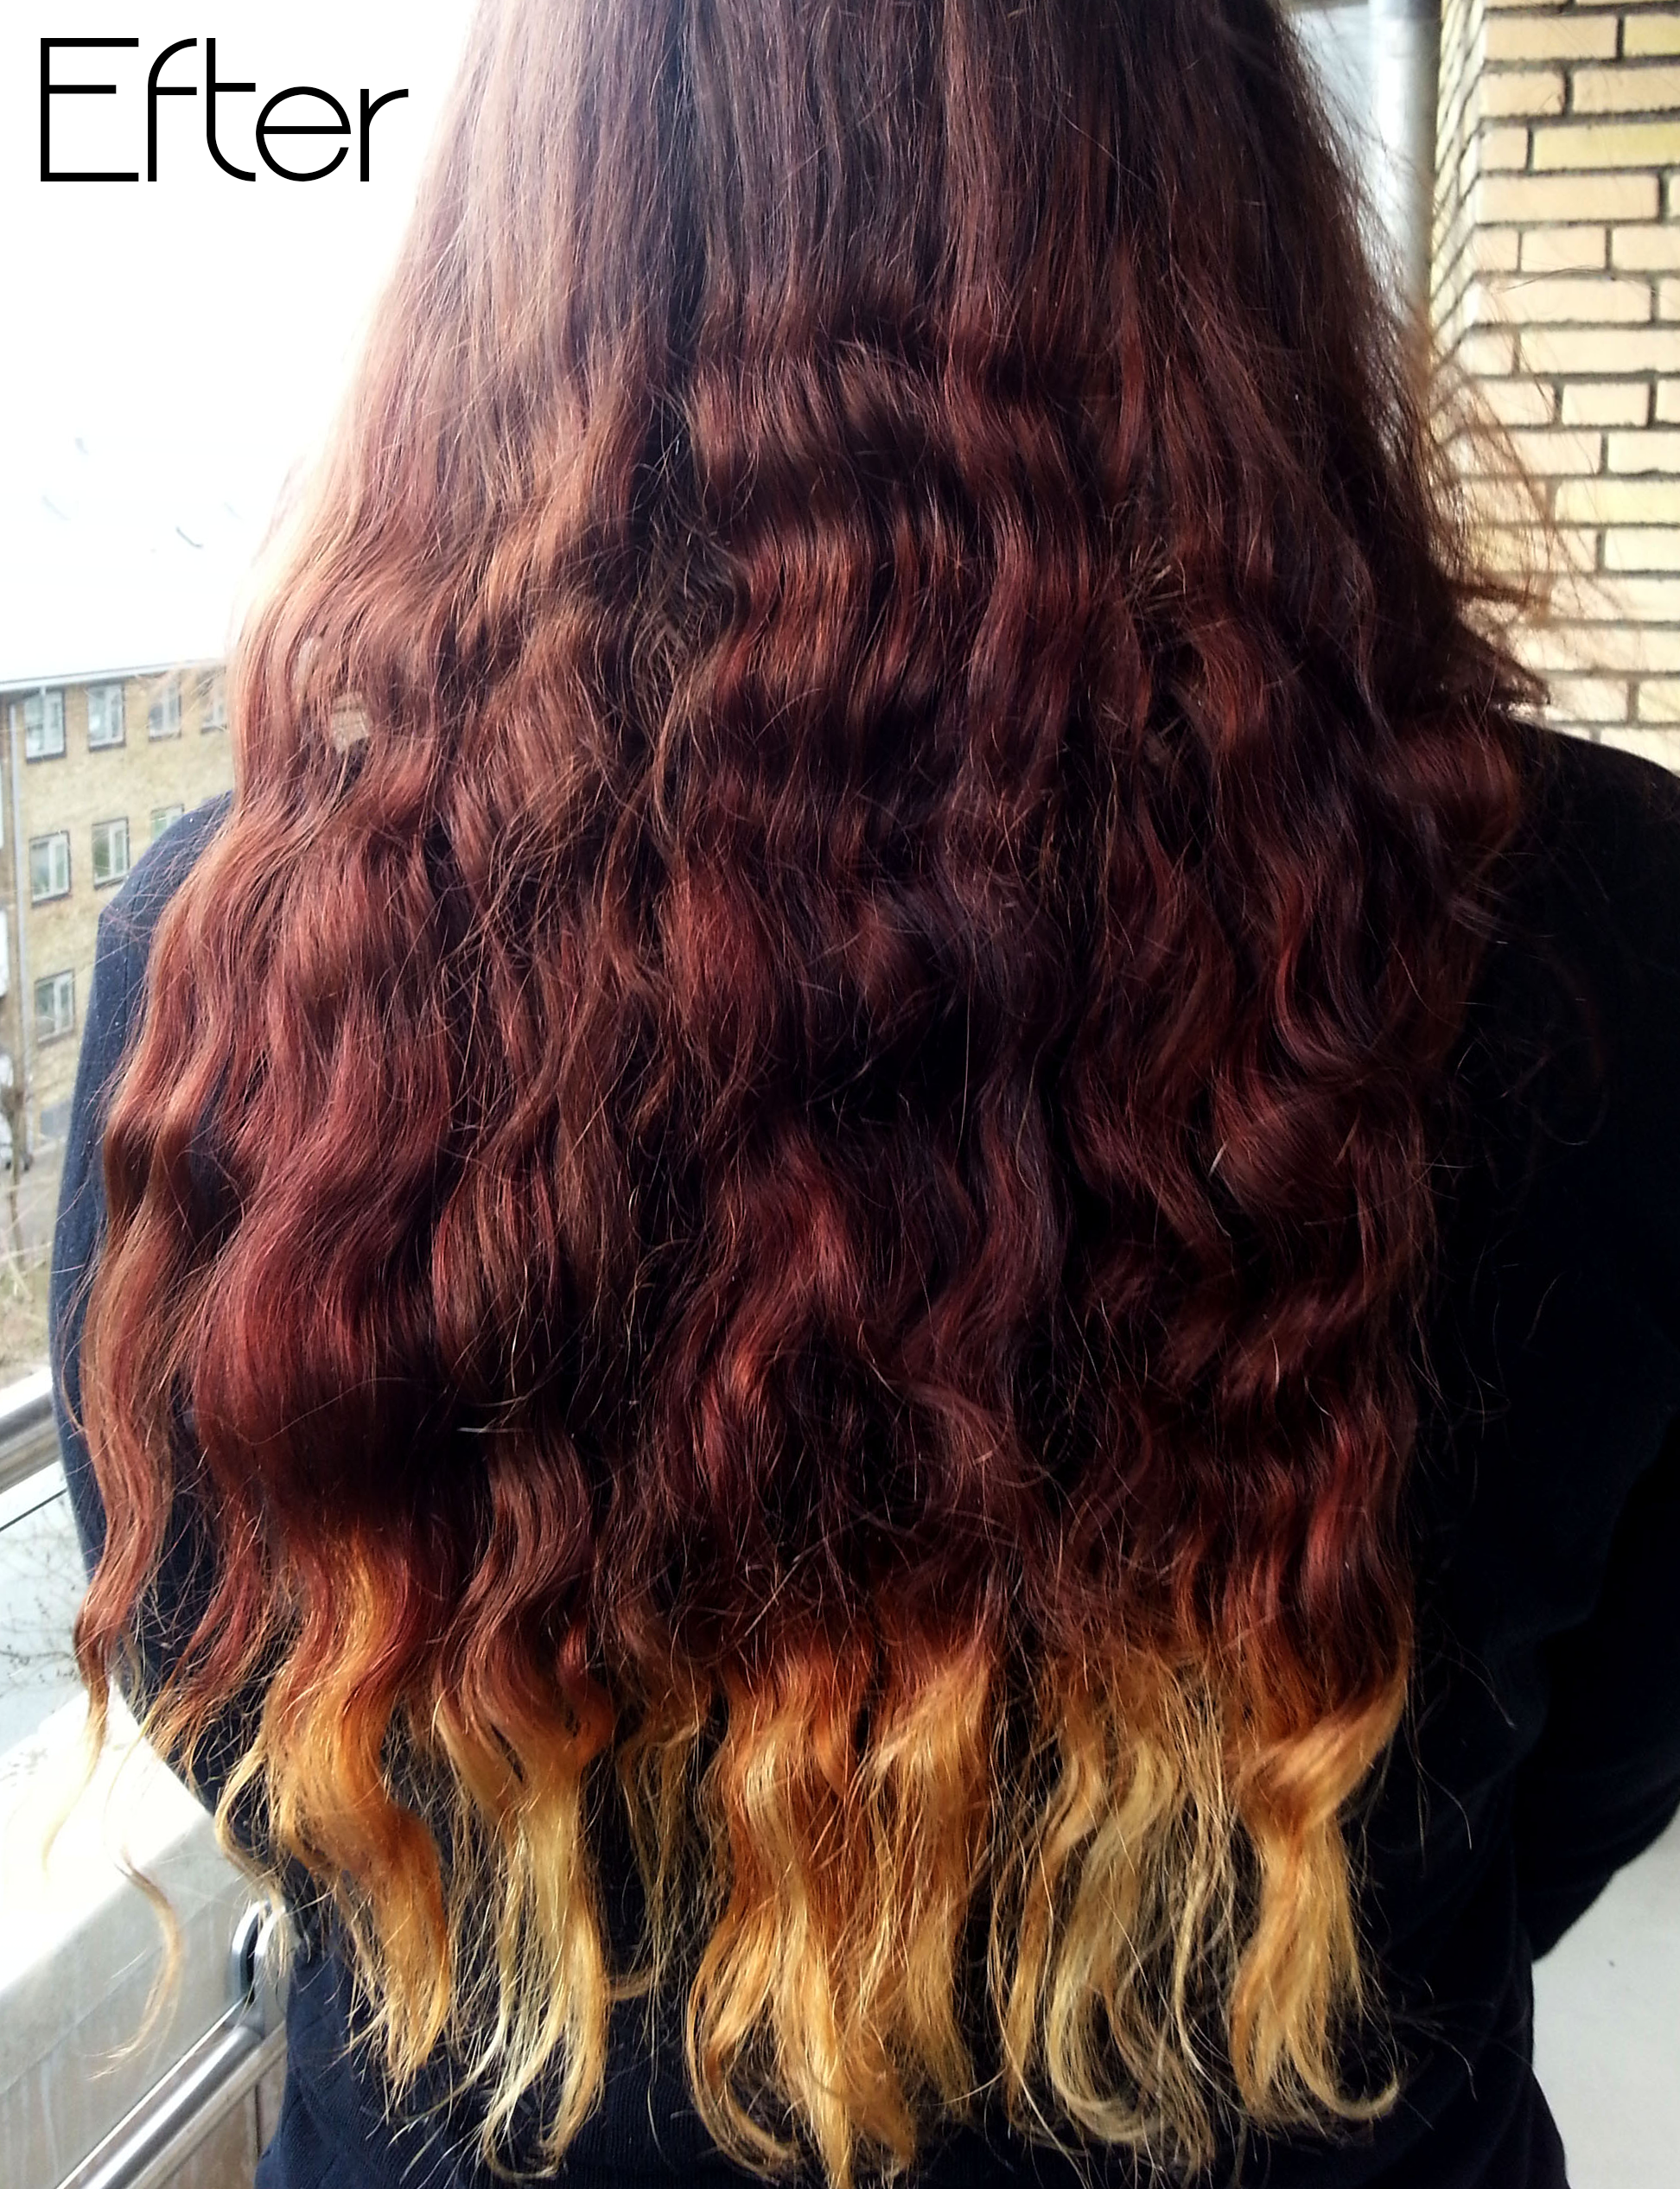 Gorgeous Took This Natural Boring Lifeless Hair To A Beautiful Fire Ombre So Red Red And So Red Red Copper On Th In 2020 Hair Styles Hair Natural Hair Styles